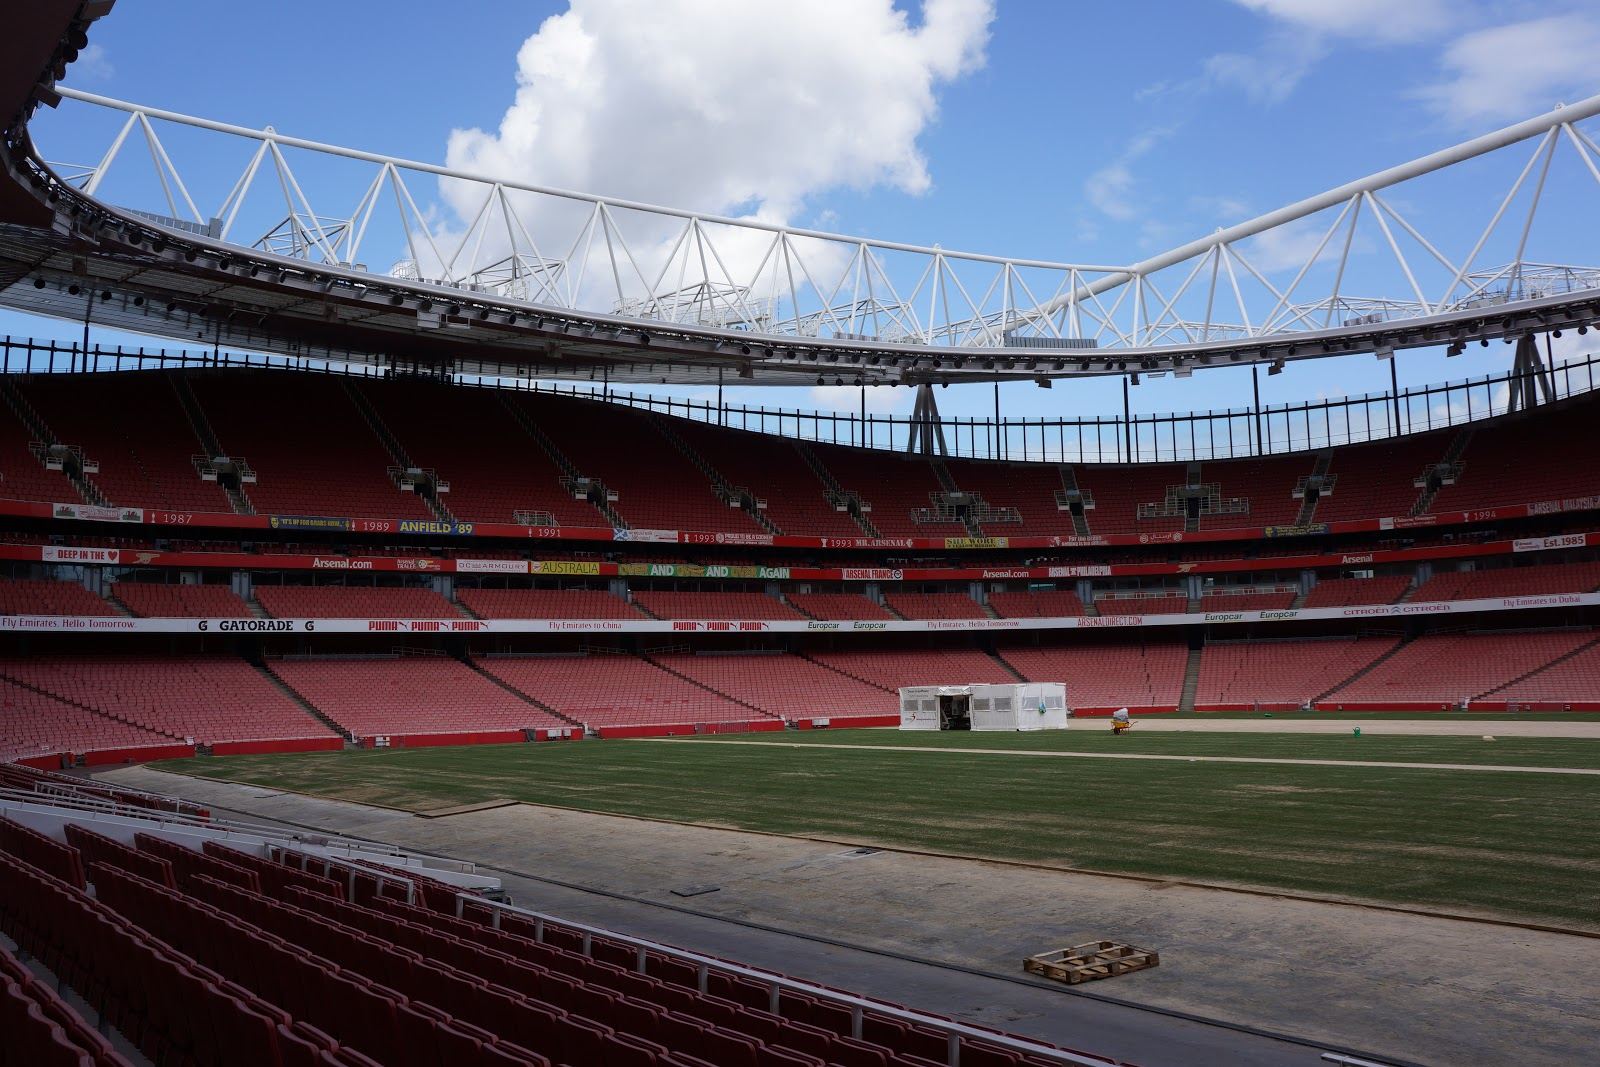 pitch works at Arsenal Stadium